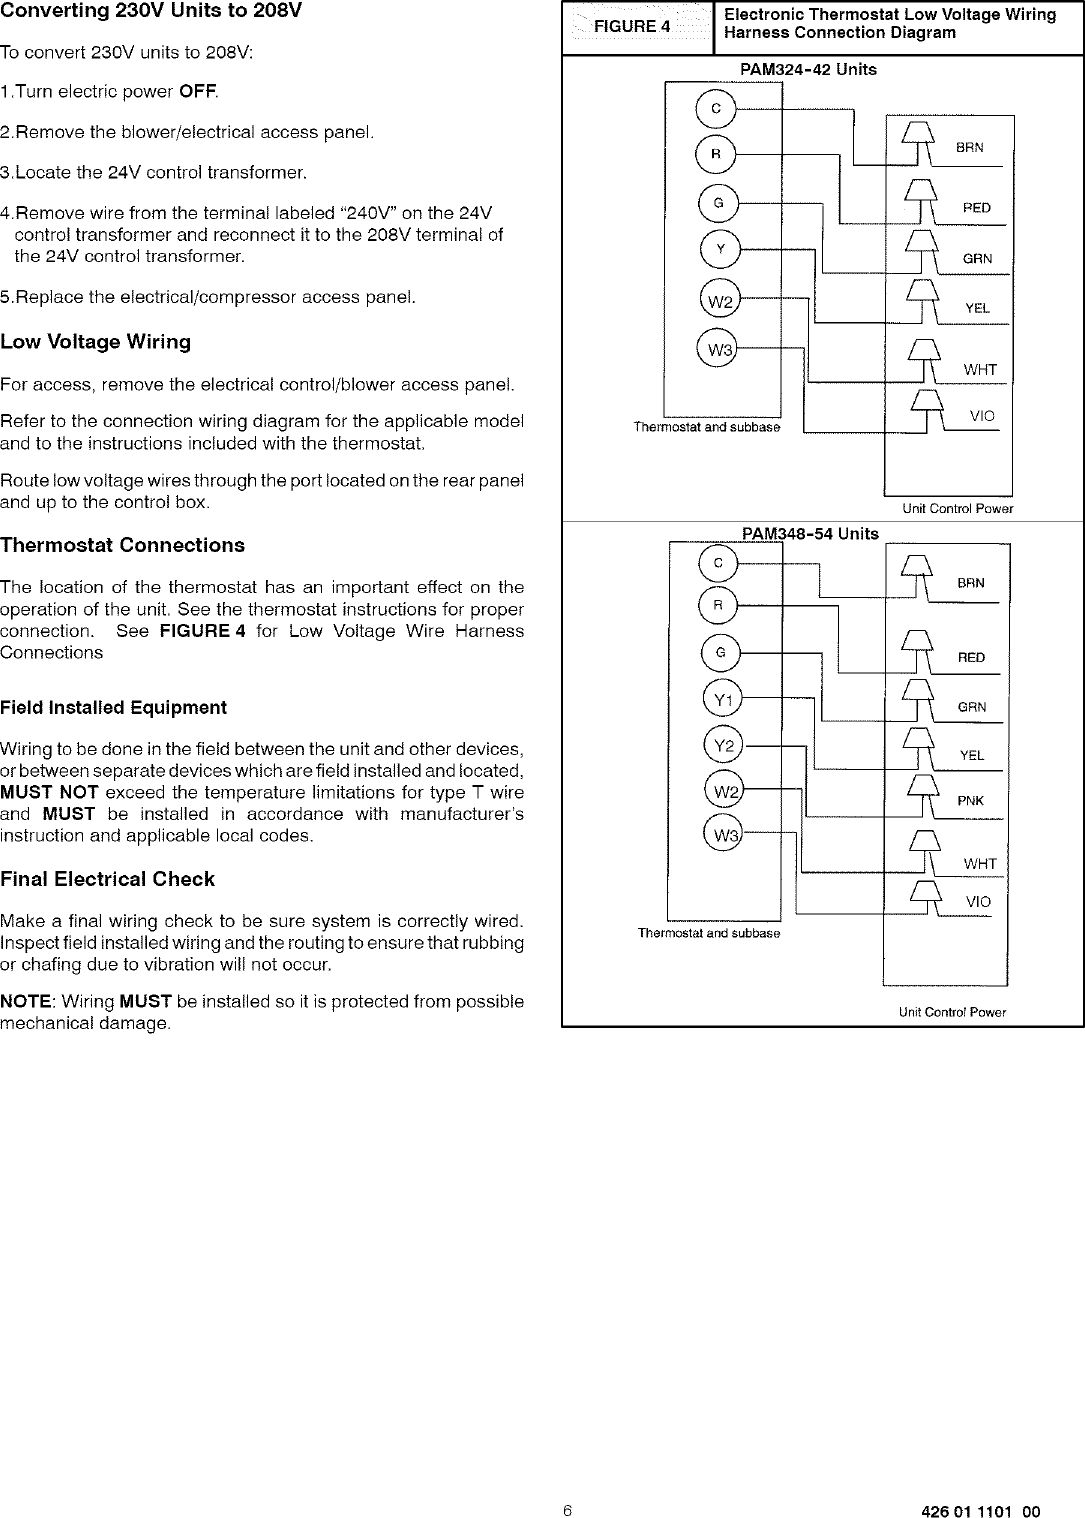 hight resolution of page 6 of 12 icp package units both units combined manual l0611131